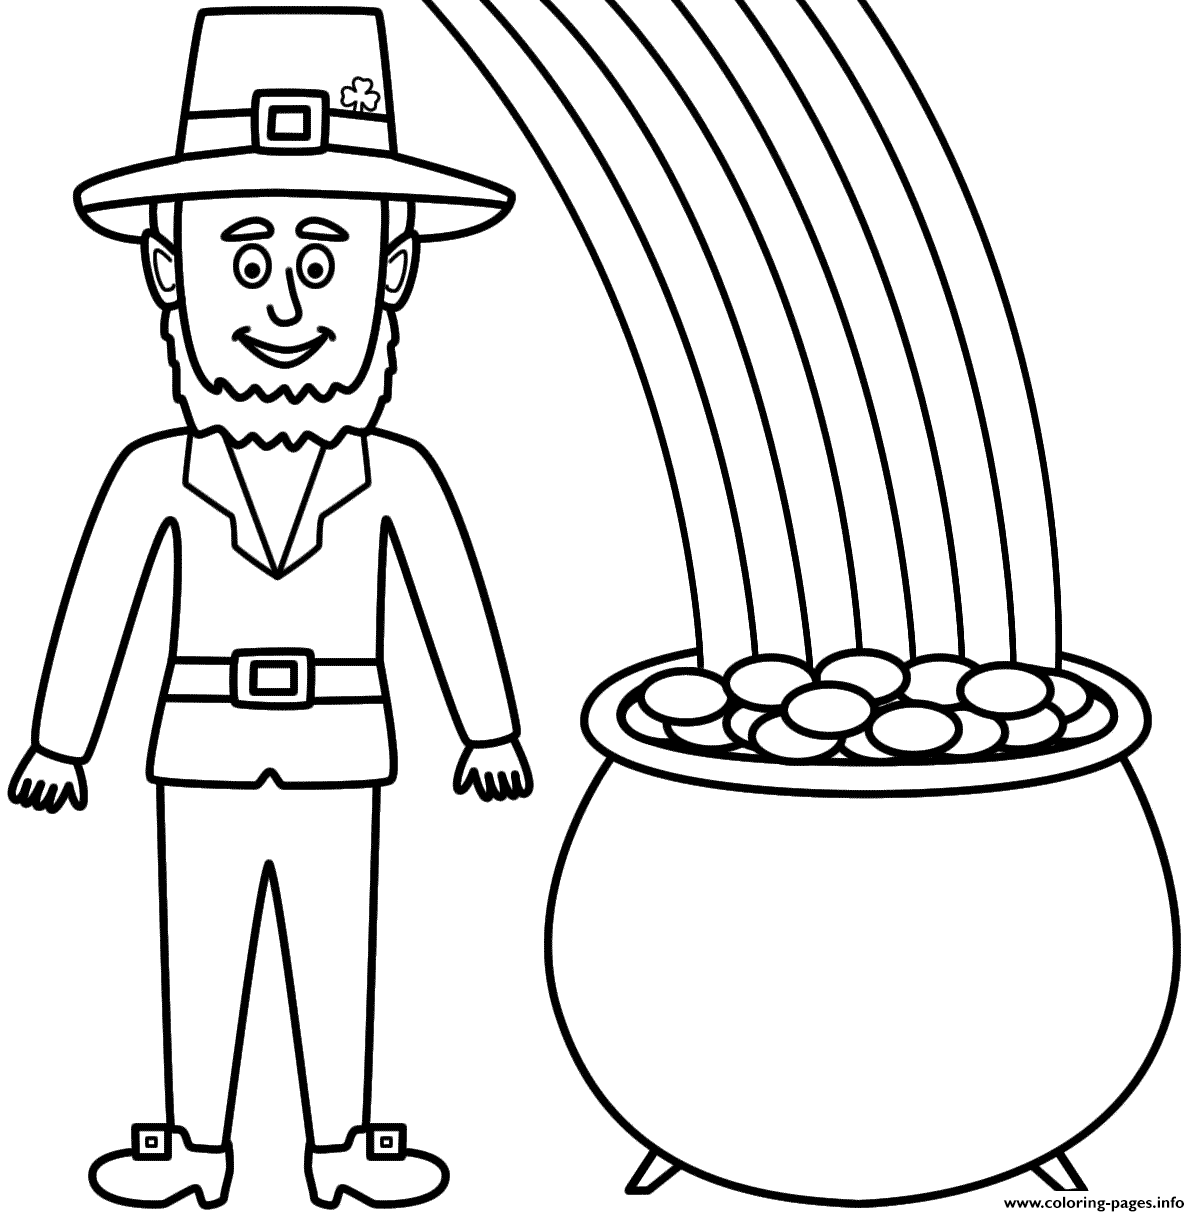 graphic about Leprechaun Coloring Pages Printable identify Leprechaun With A Pot Of Gold And Rainbow Coloring Internet pages